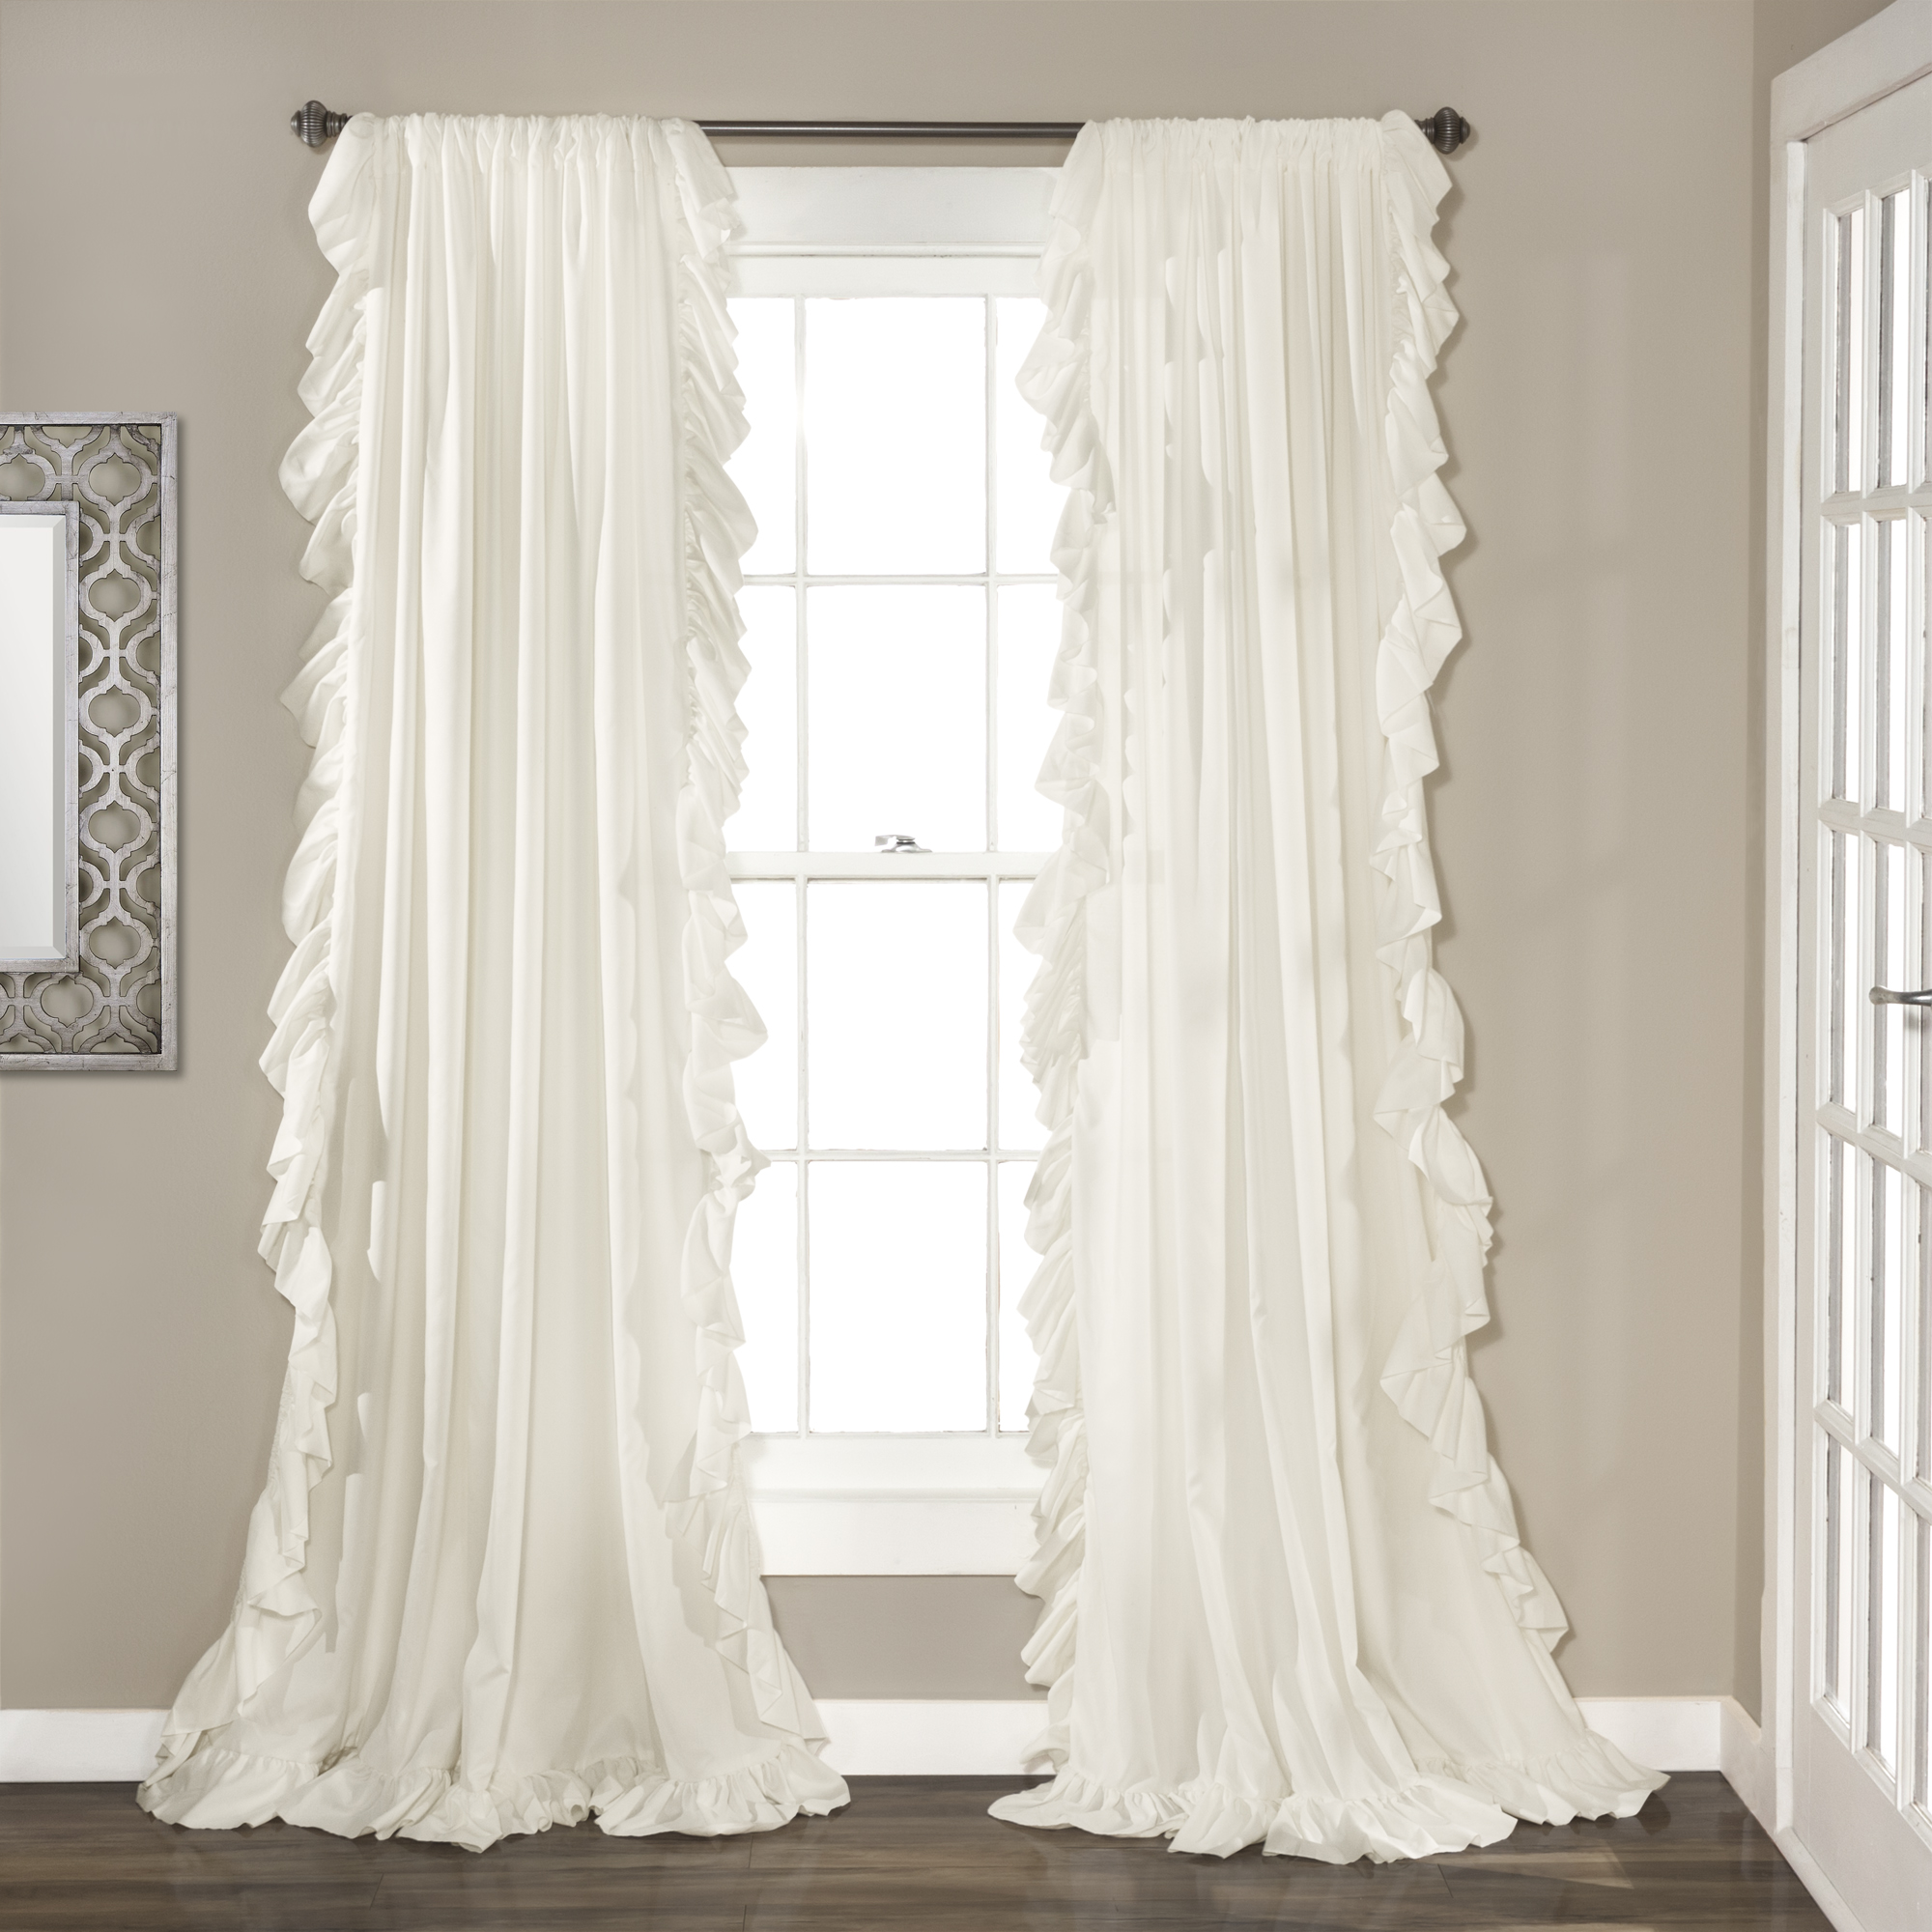 Ruffle Curtain Panel Cascading Ruffles Curtain Panel